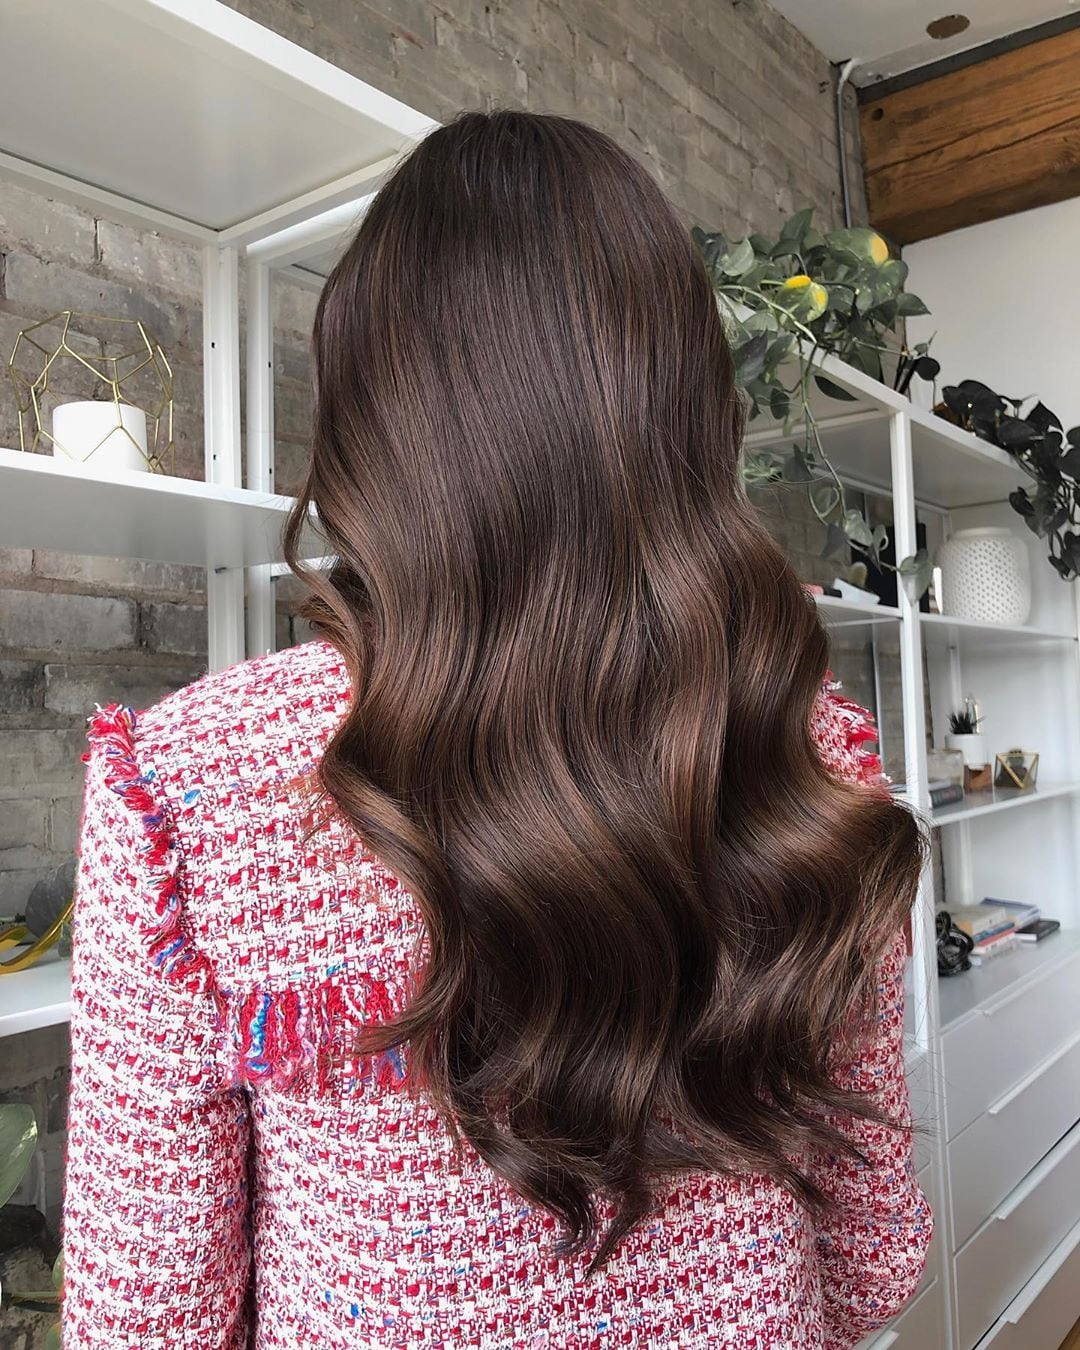 Woman with long glossy wavy chocolate brown hair